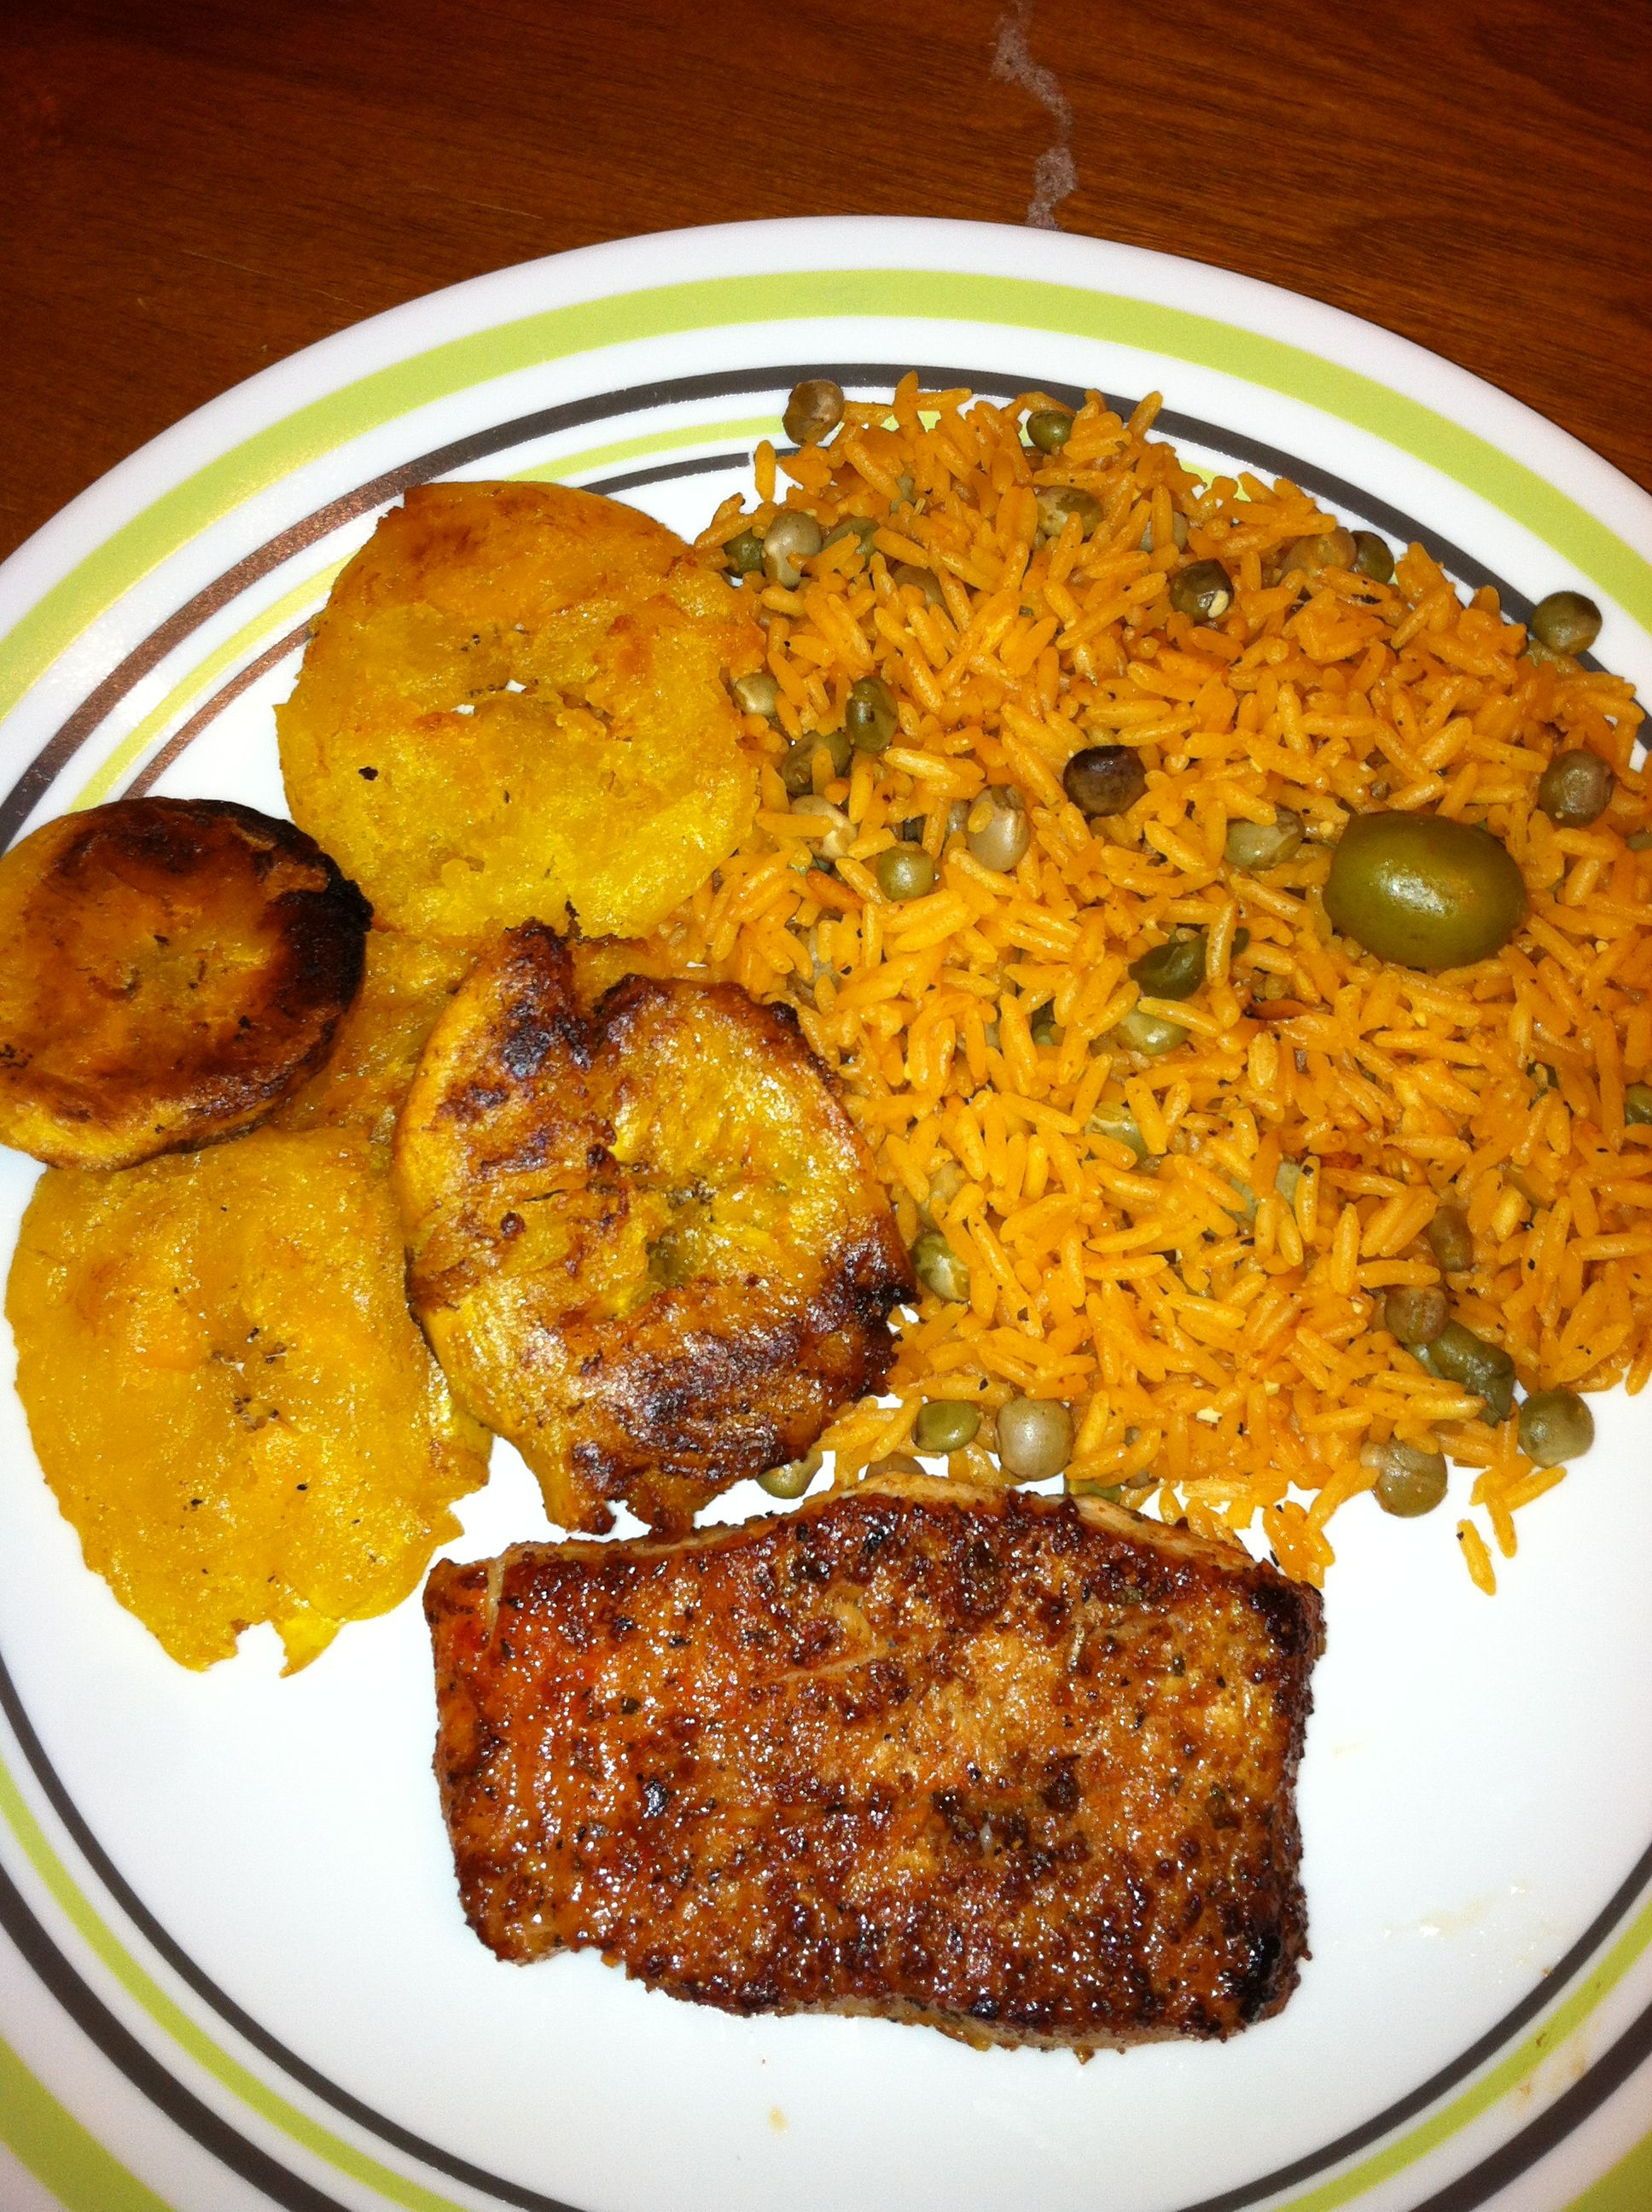 Puerto rican food boriqua to you pinterest for Puerto rican